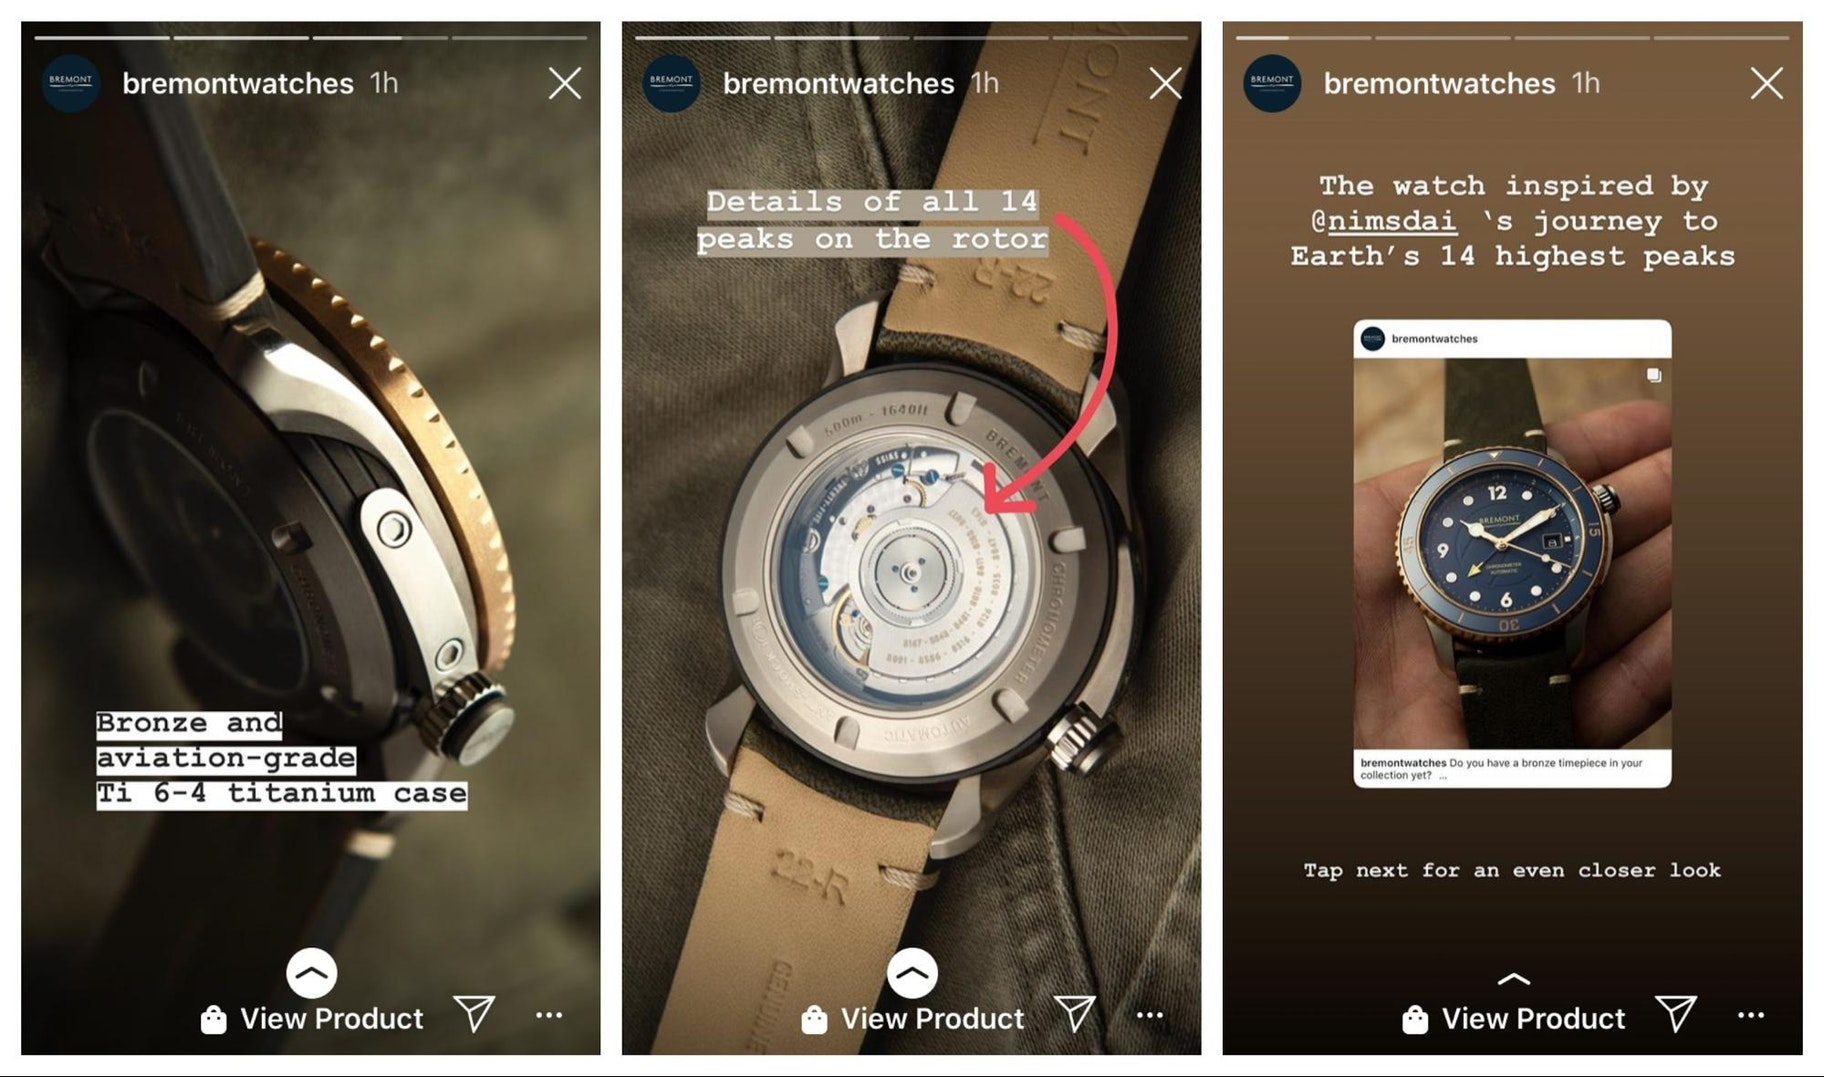 Bremont Instagram Story Design Example